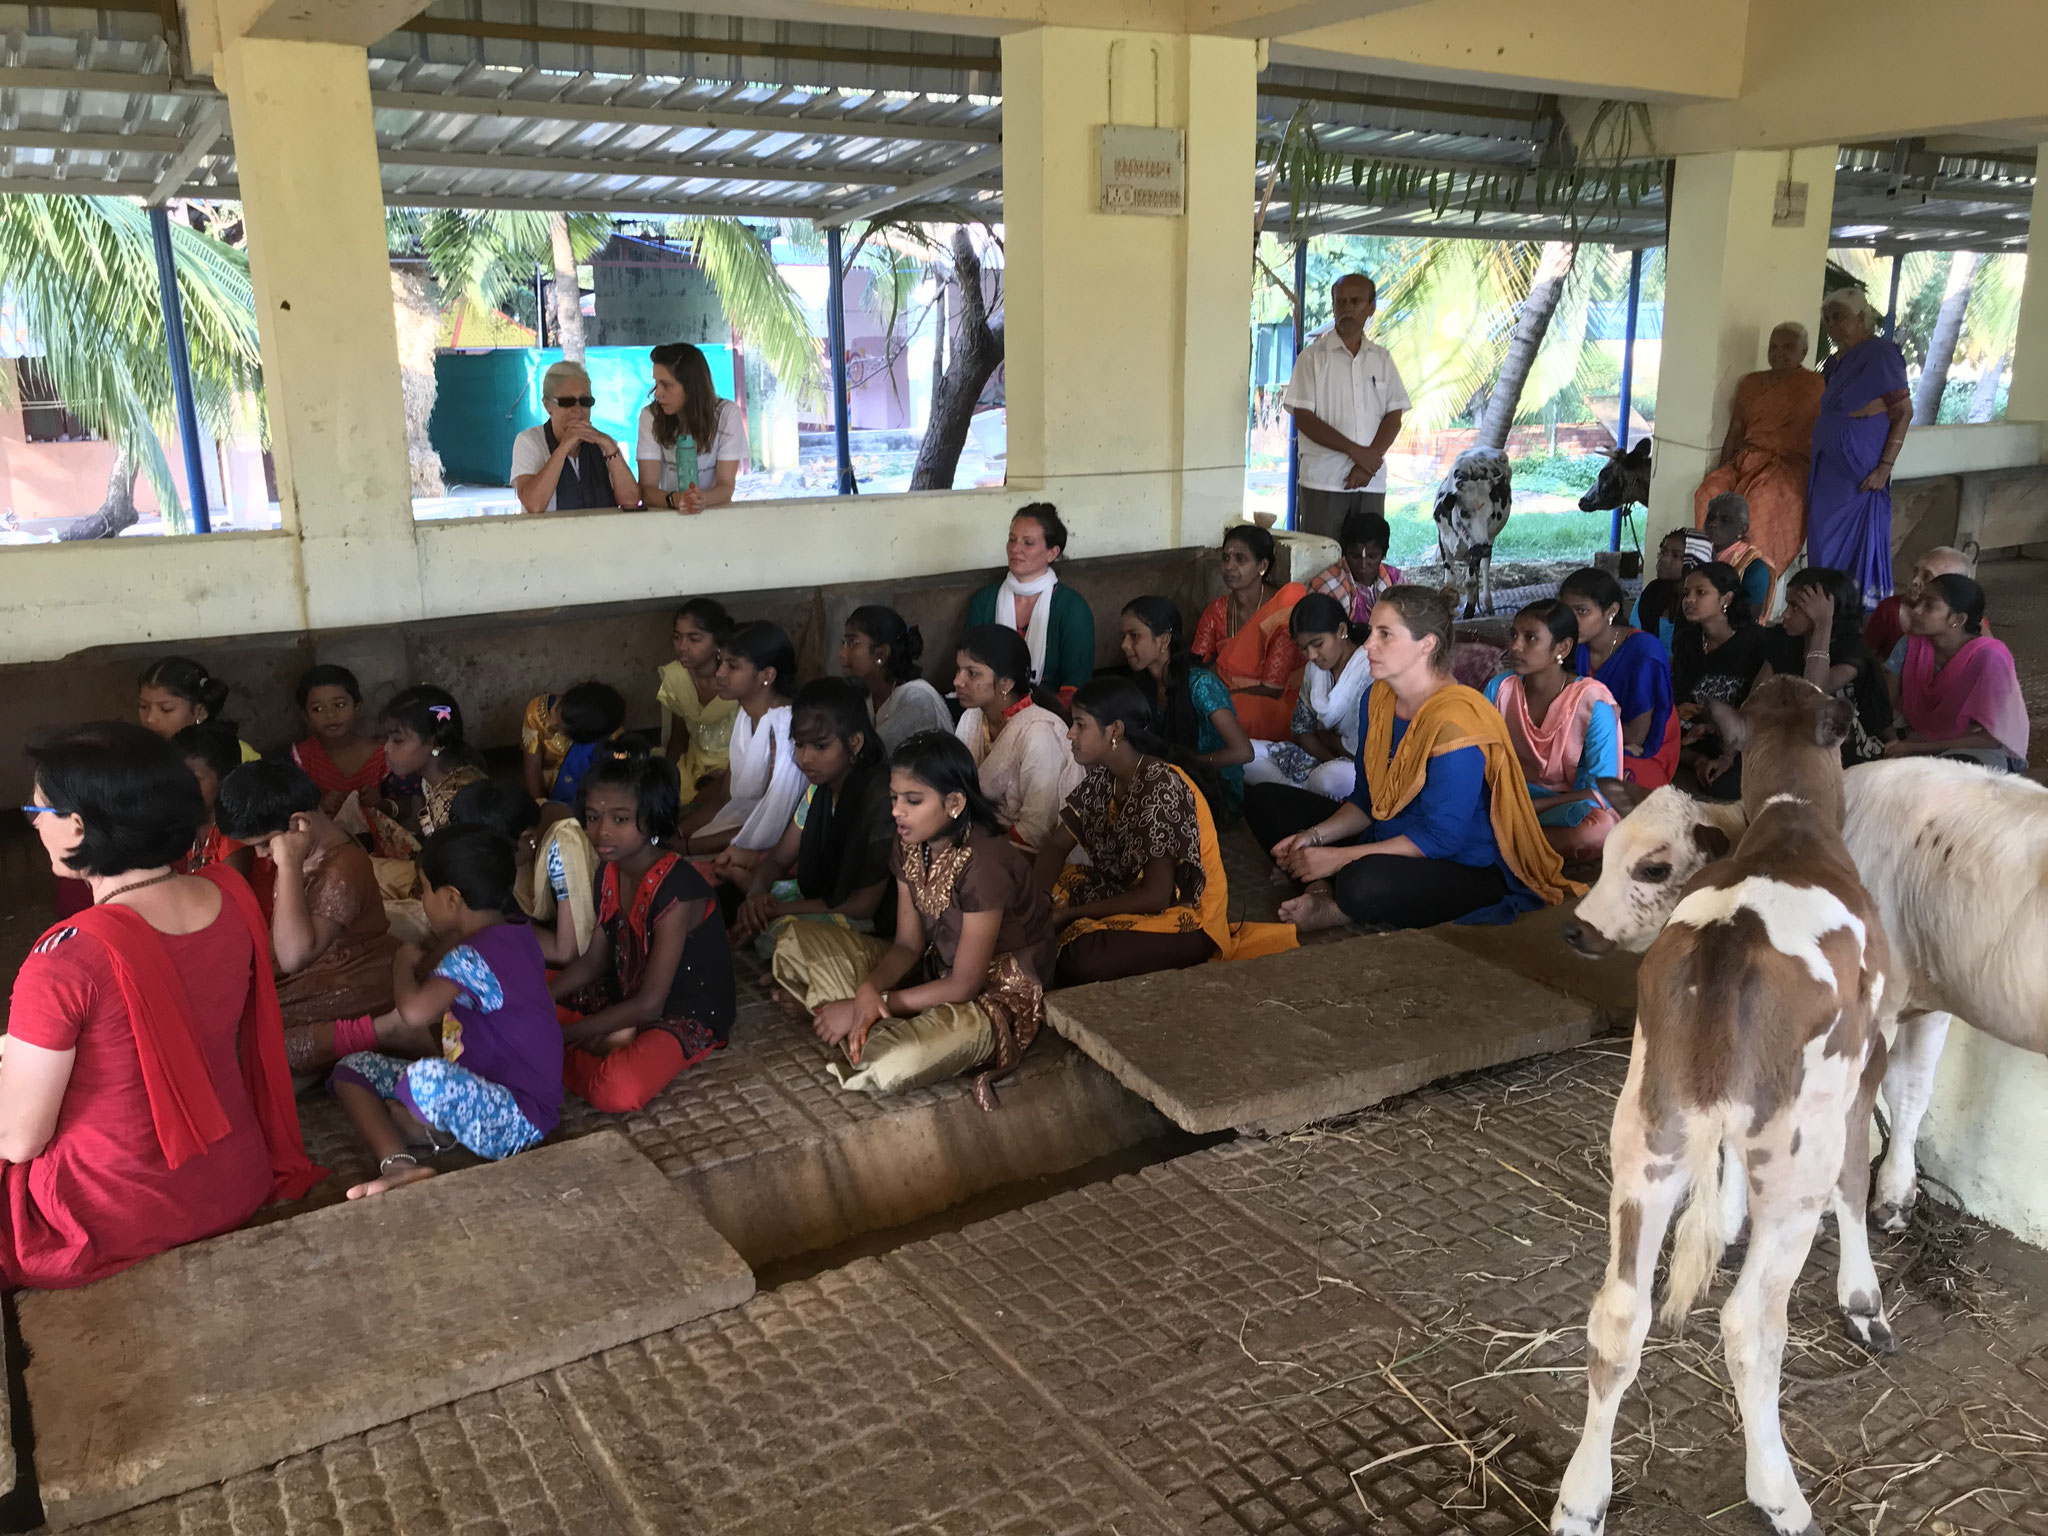 Bhajans in the cowshed (on that one day, we are singing Bhajans in the cowshed while all the cows are tied outside in the garden)